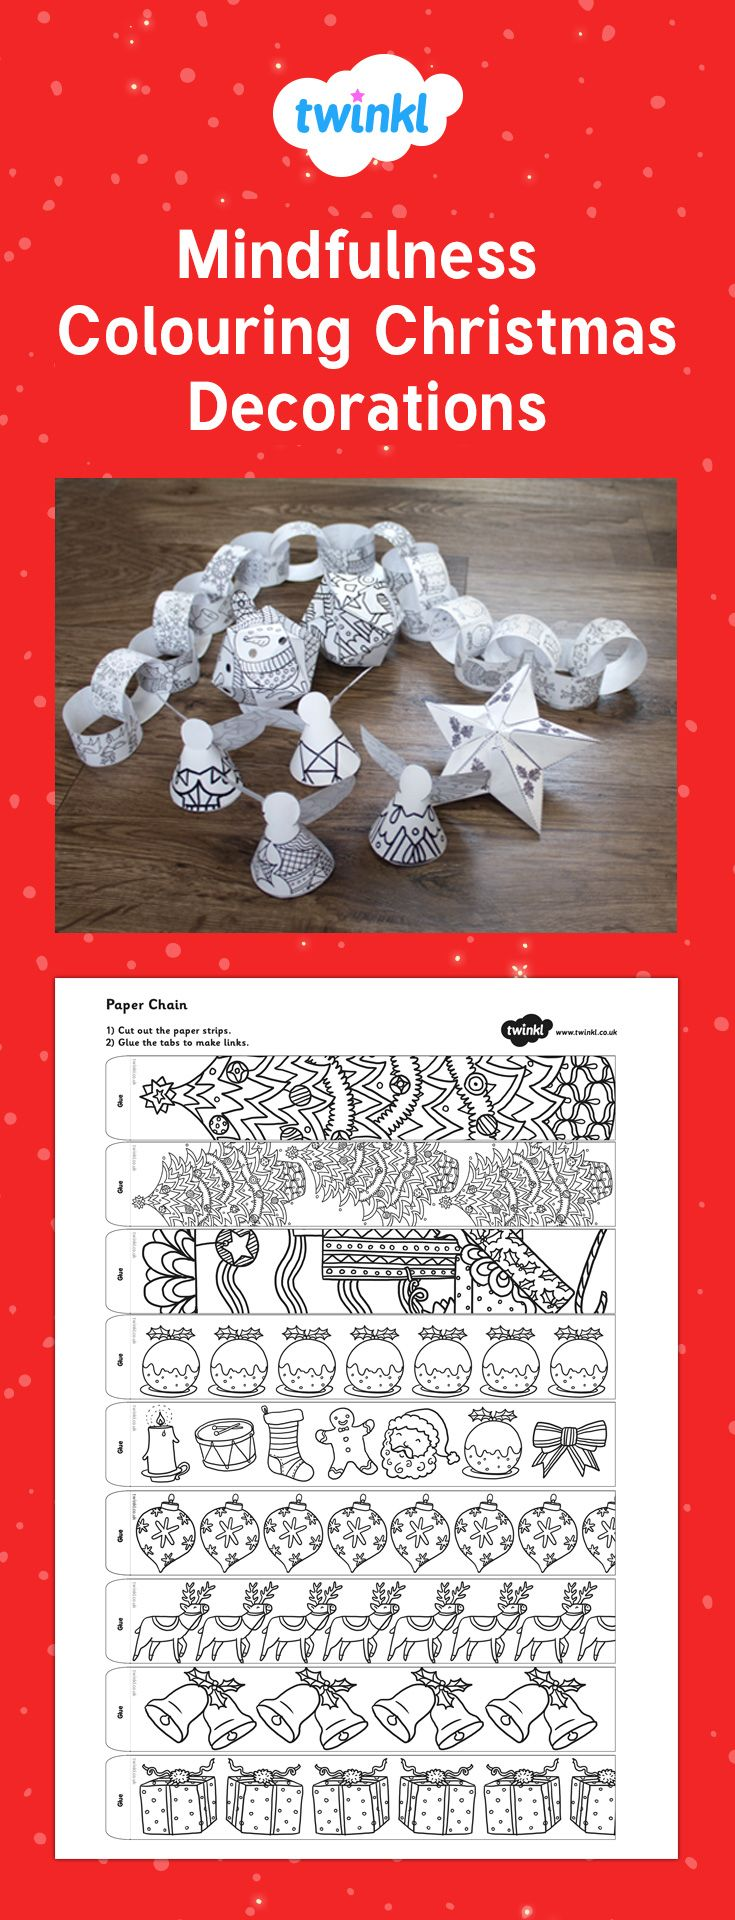 Mindfulness Colouring Christmas Decorations Christmas Coloring Books Christmas Coloring Pages Childrens Christmas Crafts